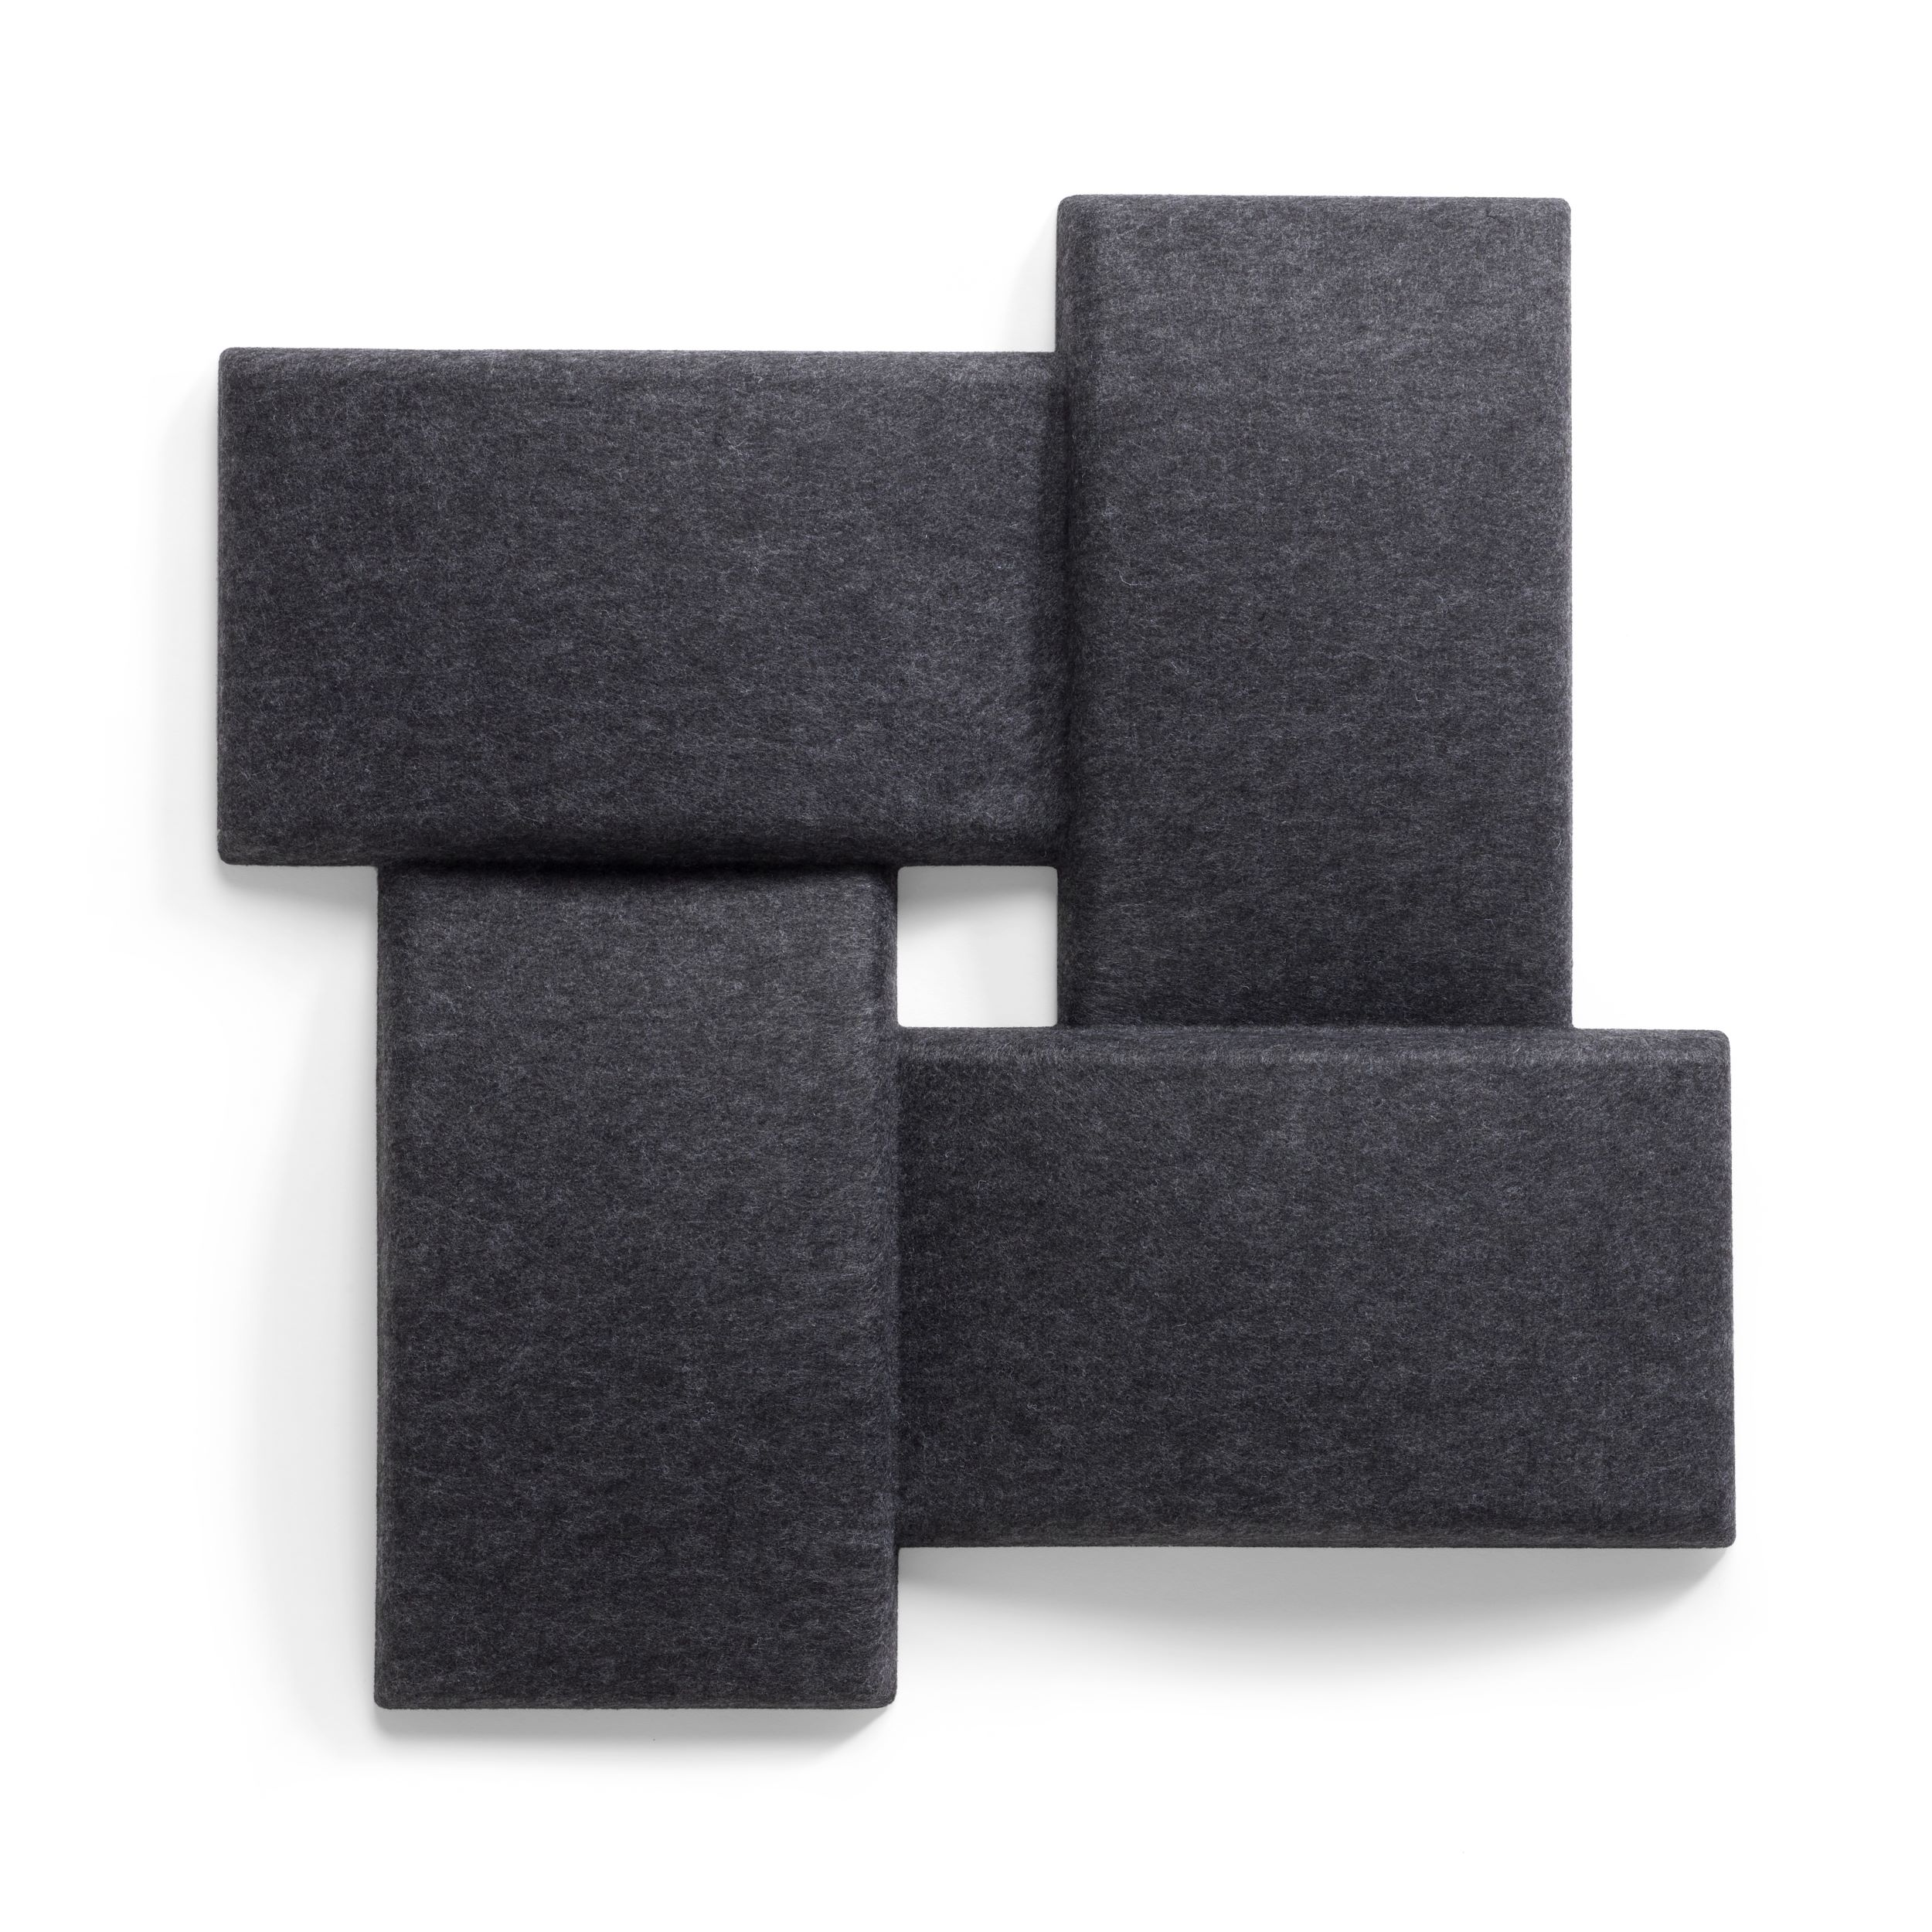 Soundwave 174 Wicker Acoustic Panel Wing 229 Rdh Amp Wikerst 229 L